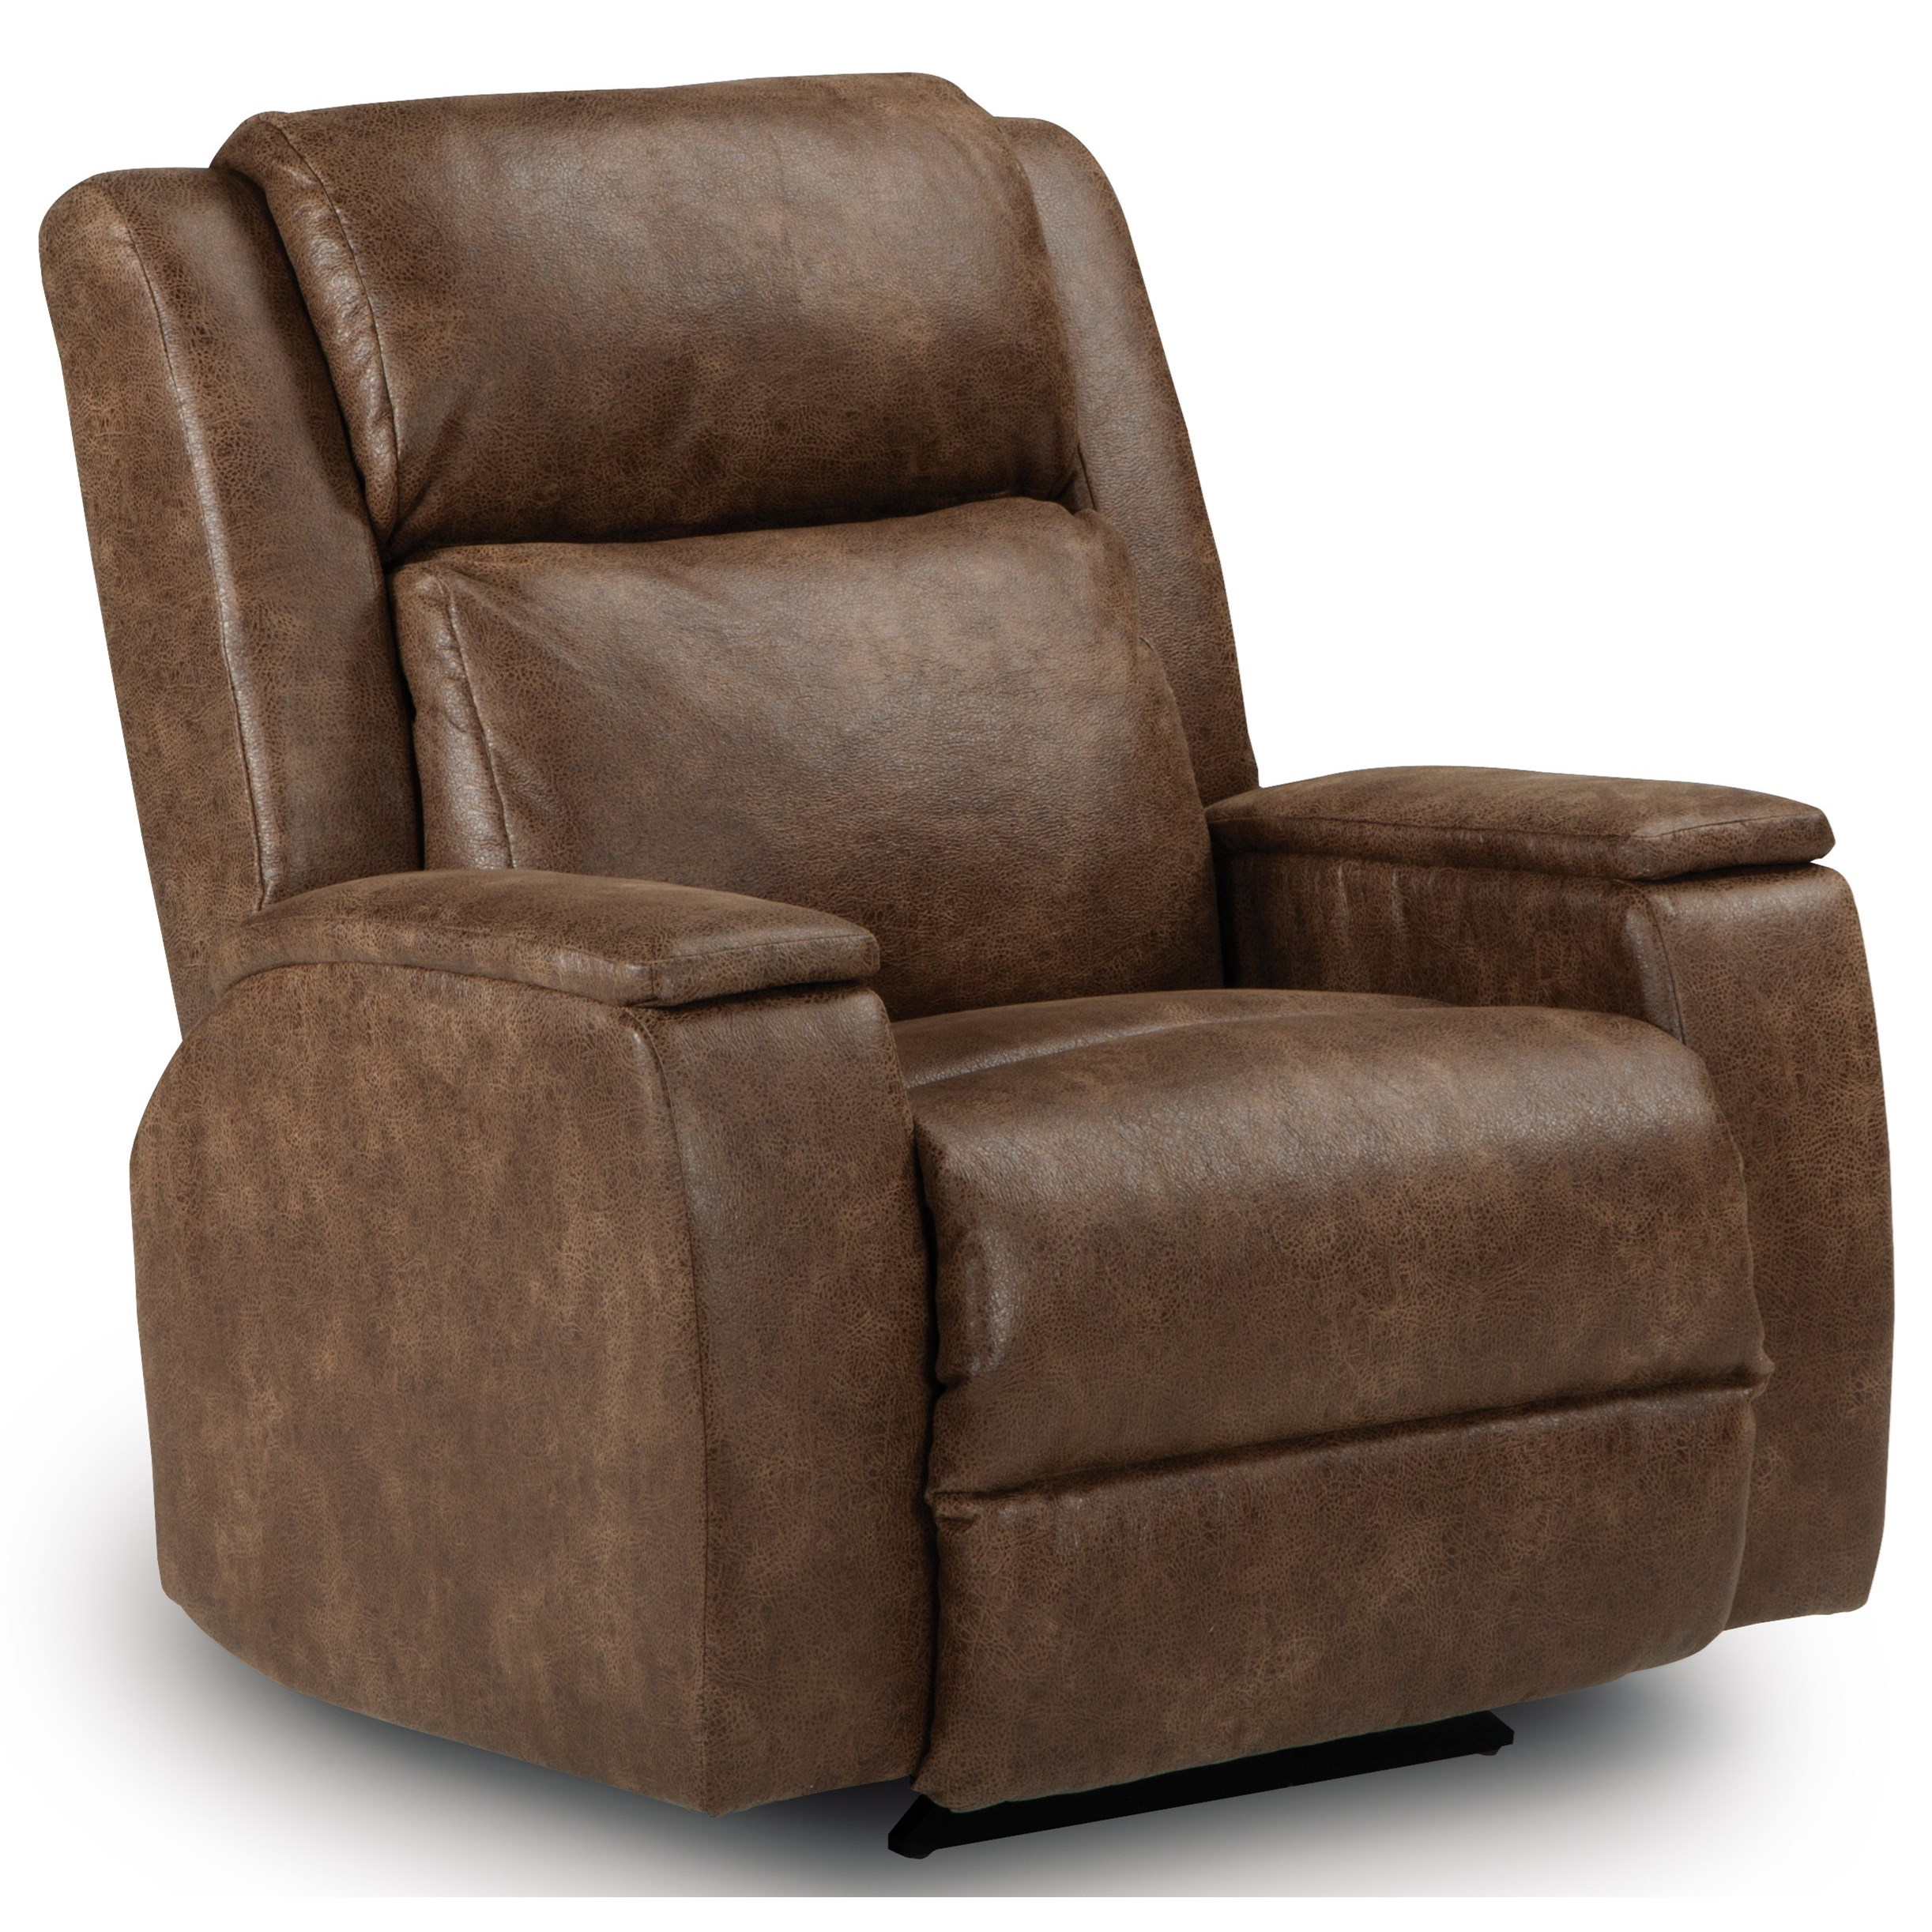 by best home furnishings colton power lift recliner with power adjustable headrest